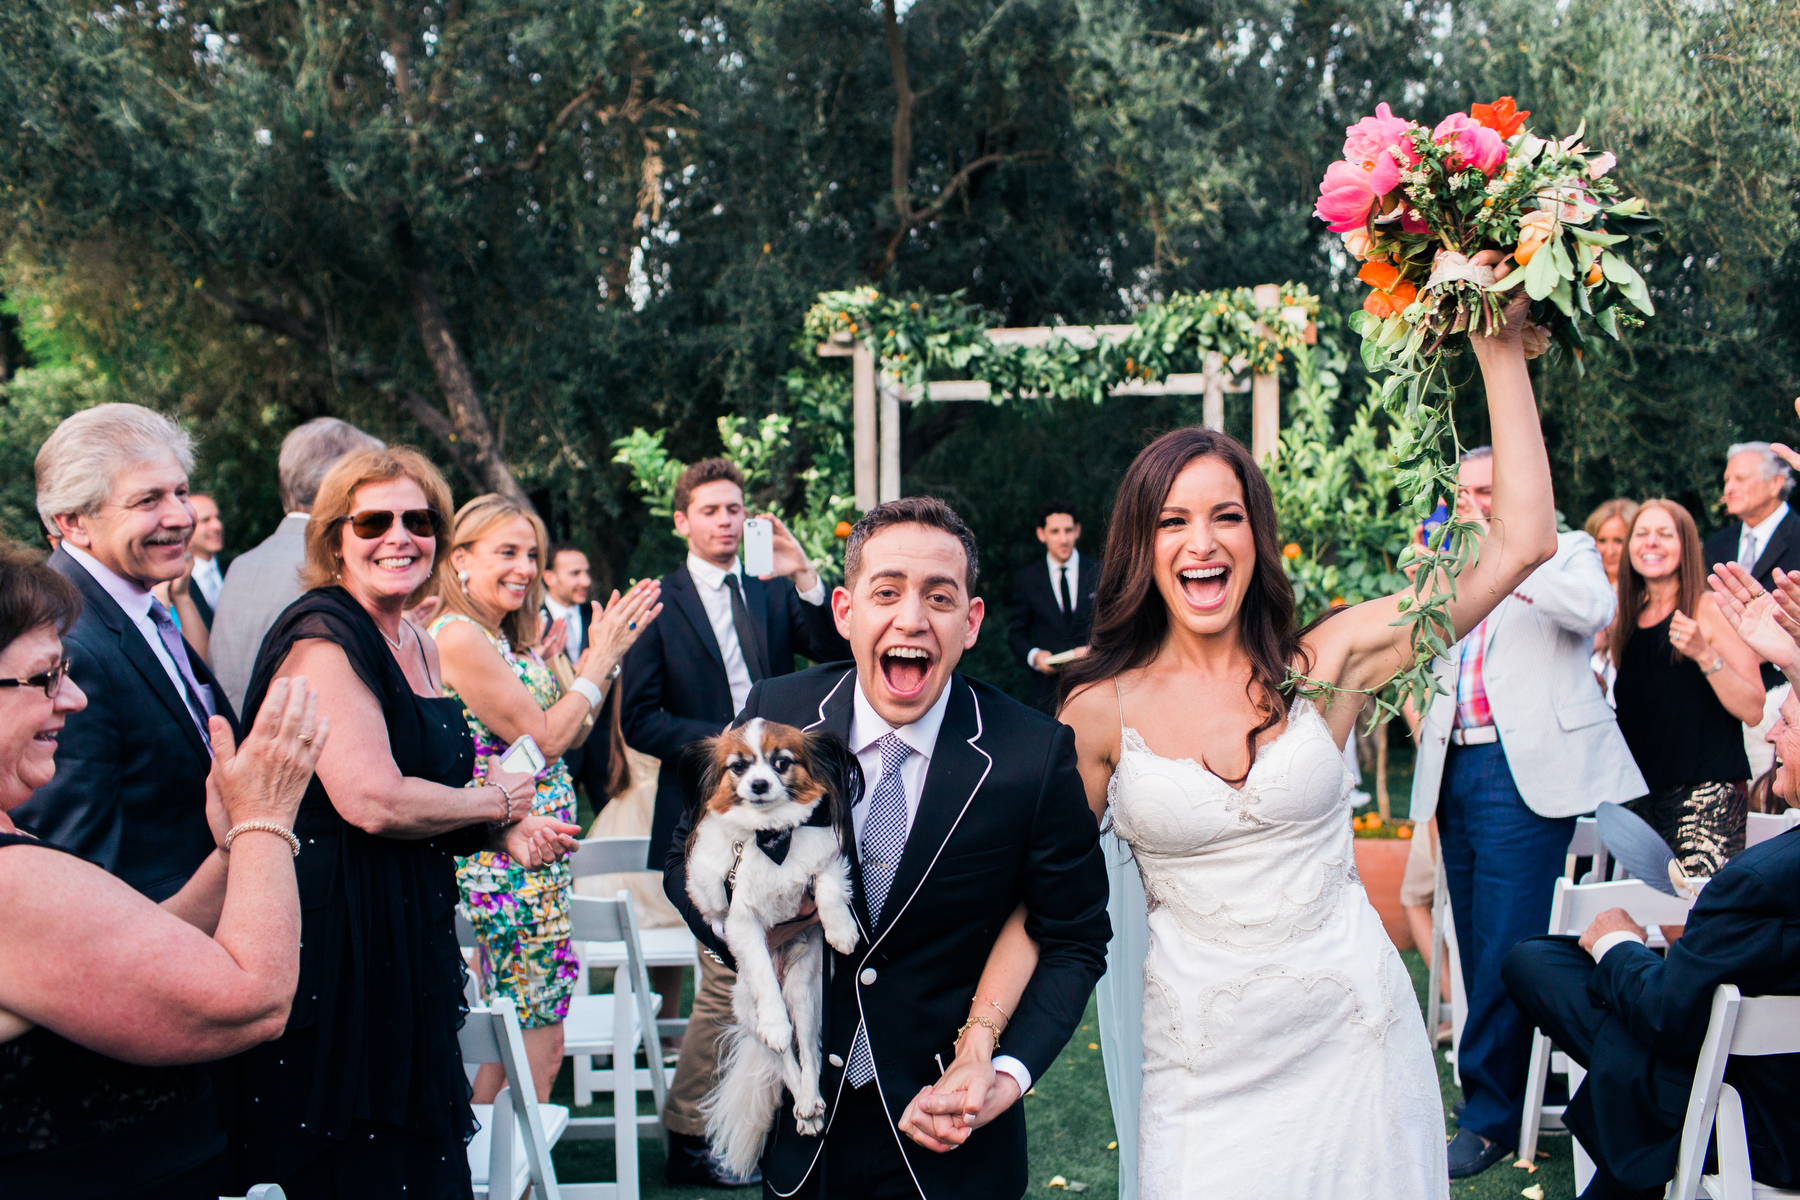 Just married couple leaves with puppy - photo by Corbin Gurkin